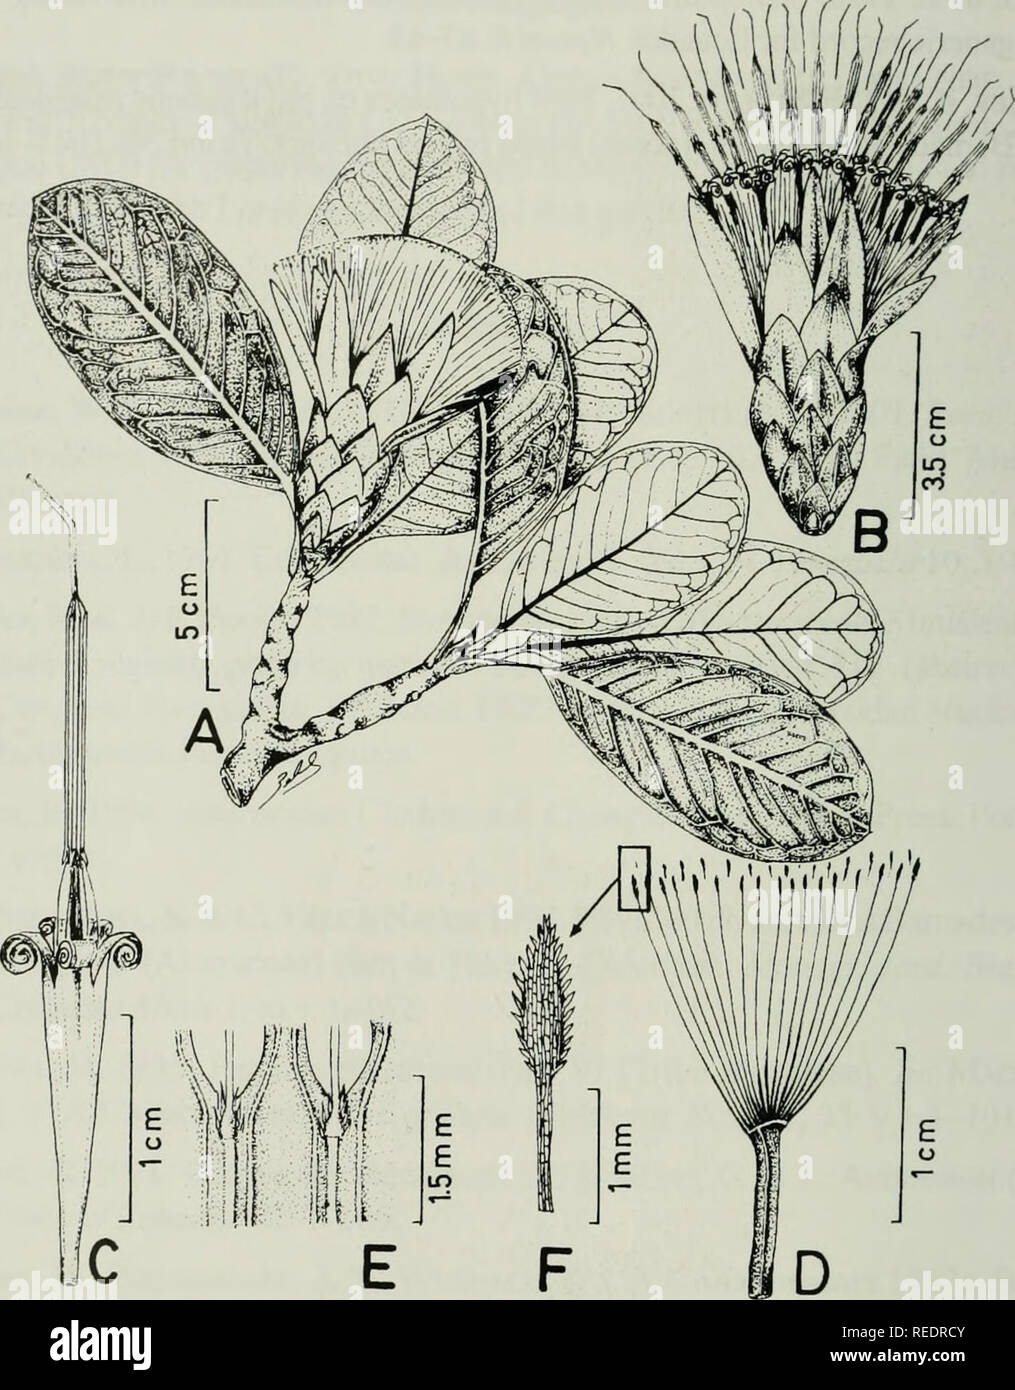 . Compositae newsletter. Compositae. 10 Comp. Newsl. 39, 2003. Fig. 1. Stenopadus andicola Pruski. Illustration (based on Beltran 3333). A. Habit. B. Capitulum. C. Corolla, stamens, and style. D. Cypsela. E. Adaxial surface of corolla tube-lobe juncture, showing pilose hairs, two veins per lobe, and insertion of filaments near the sinus of the corolla lobes. F. Enlarged apical portion of pappus seta showing barbellate hairs.. Please note that these images are extracted from scanned page images that may have been digitally enhanced for readability - coloration and appearance of these illustrati - Stock Image